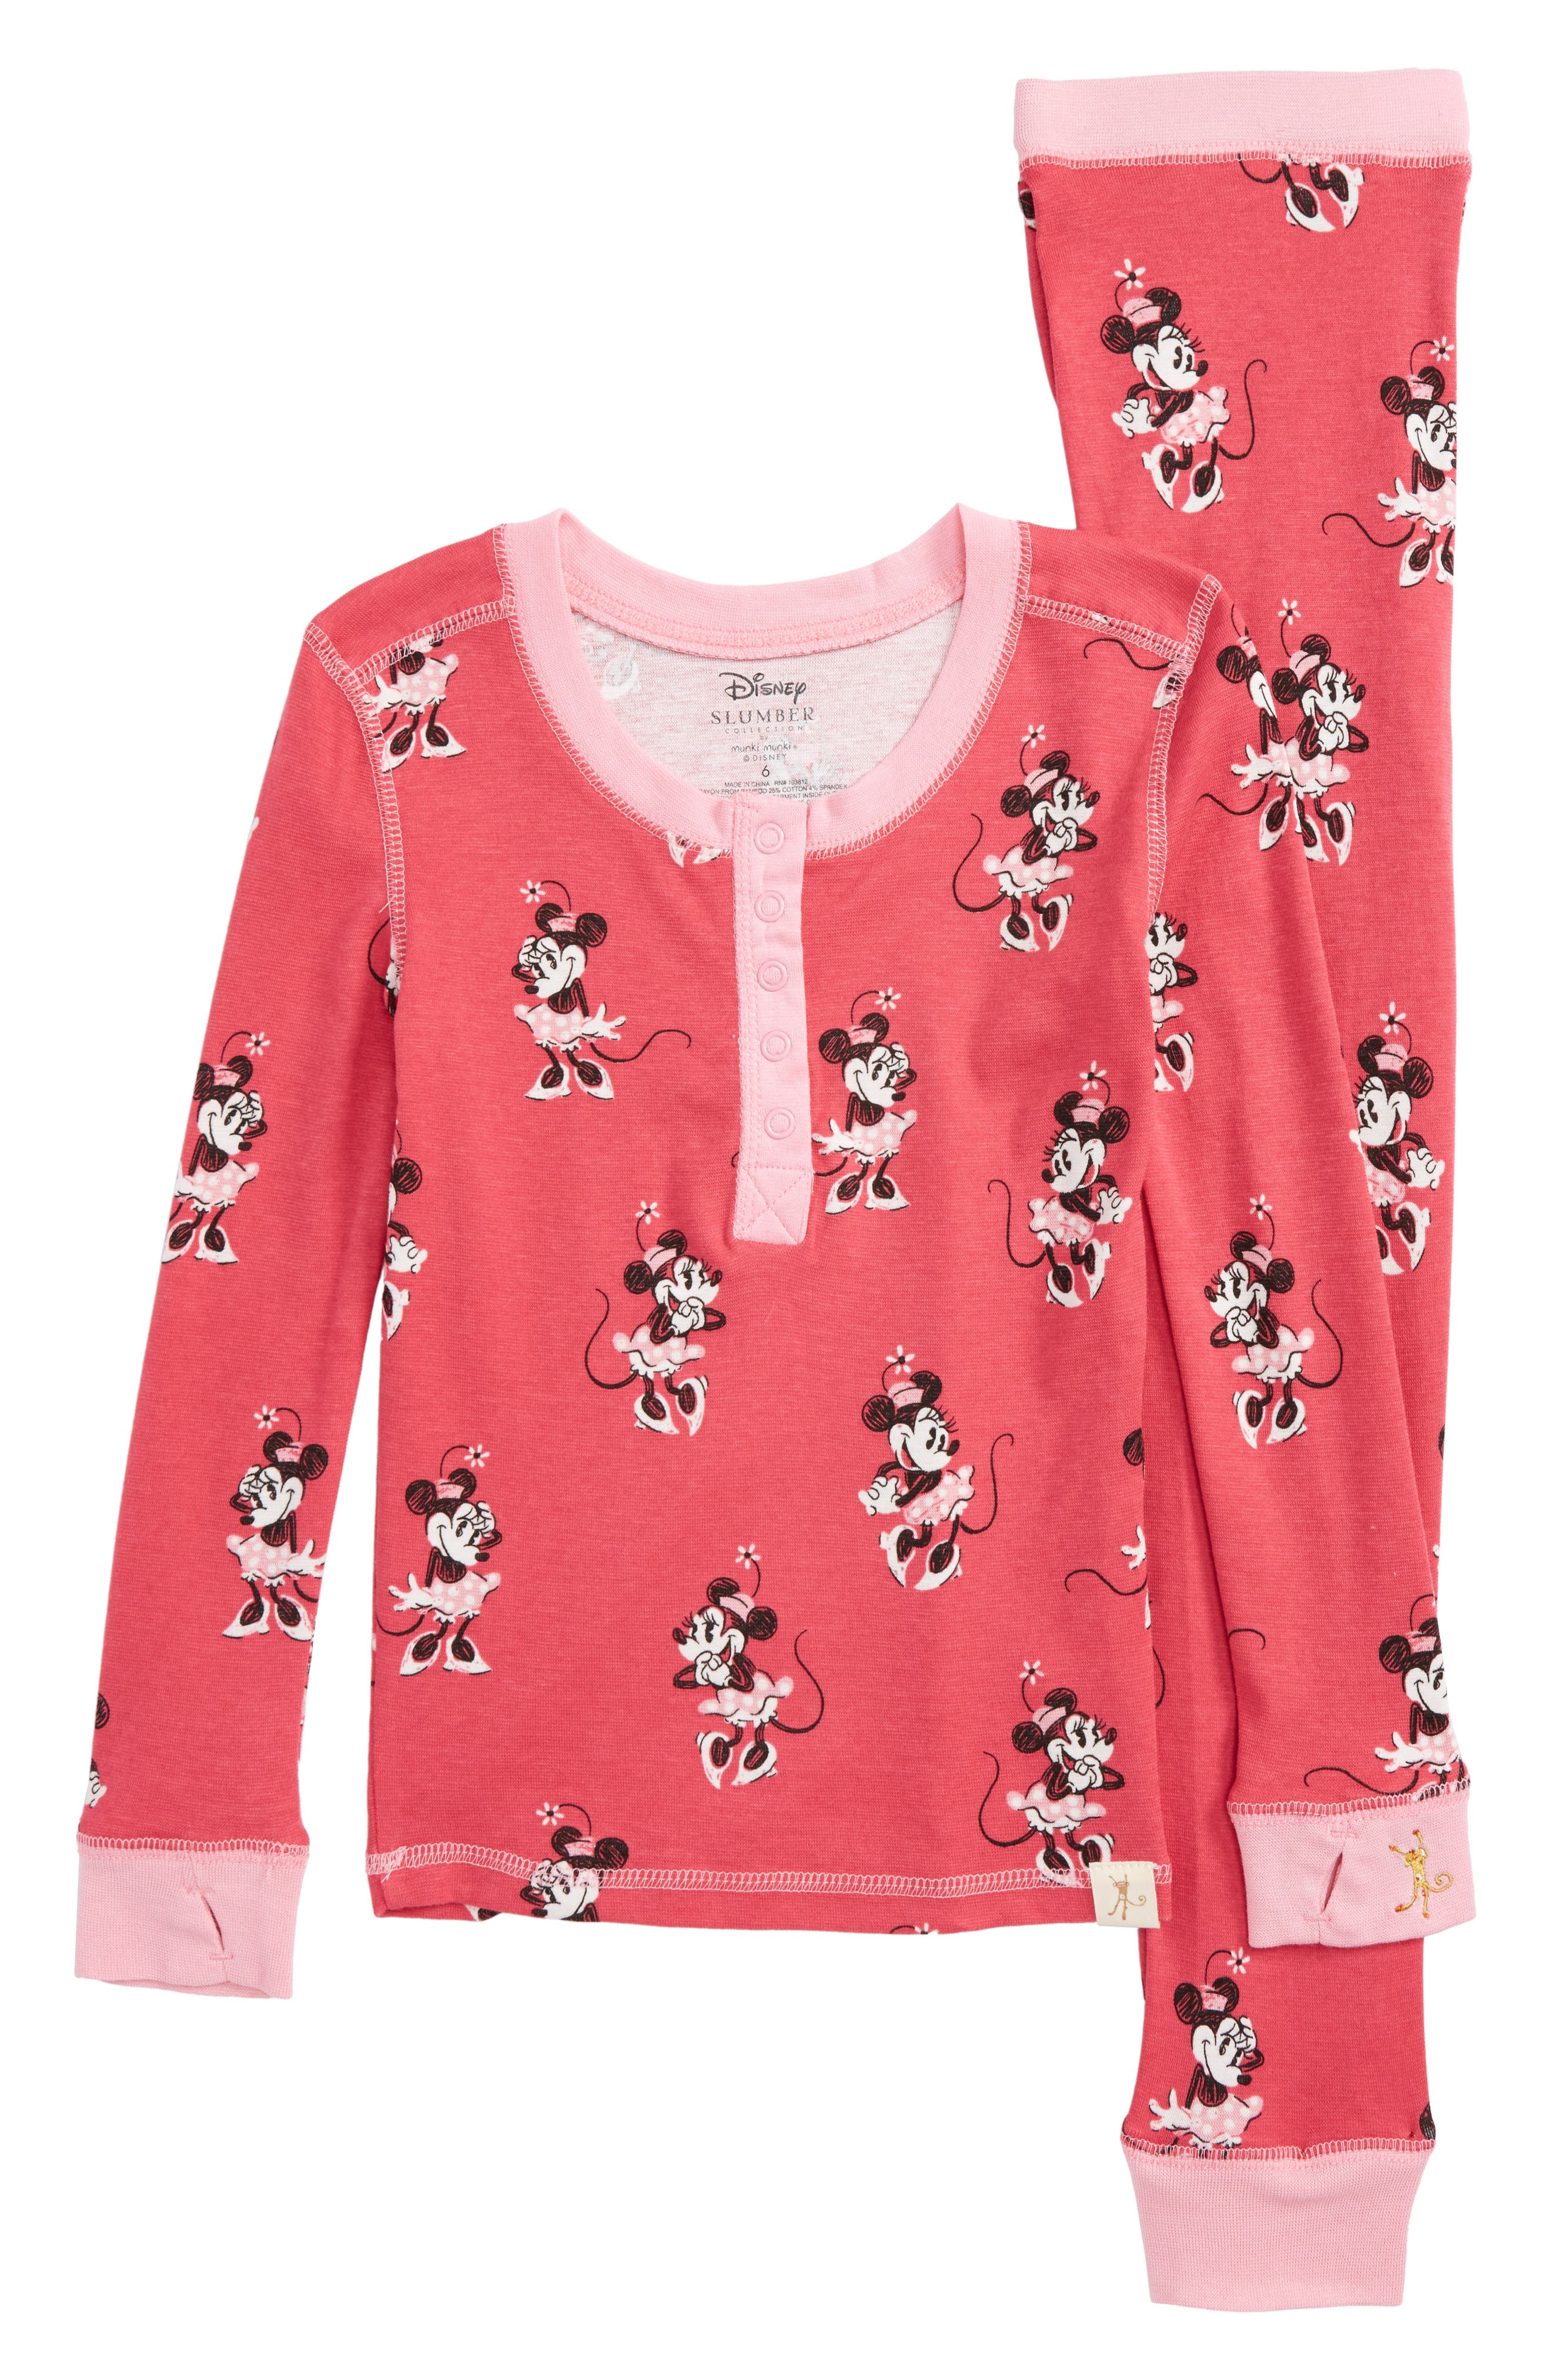 Disney – Minnie Mouse Fitted Two-Piece Pajamas,                             Main thumbnail 1, color,